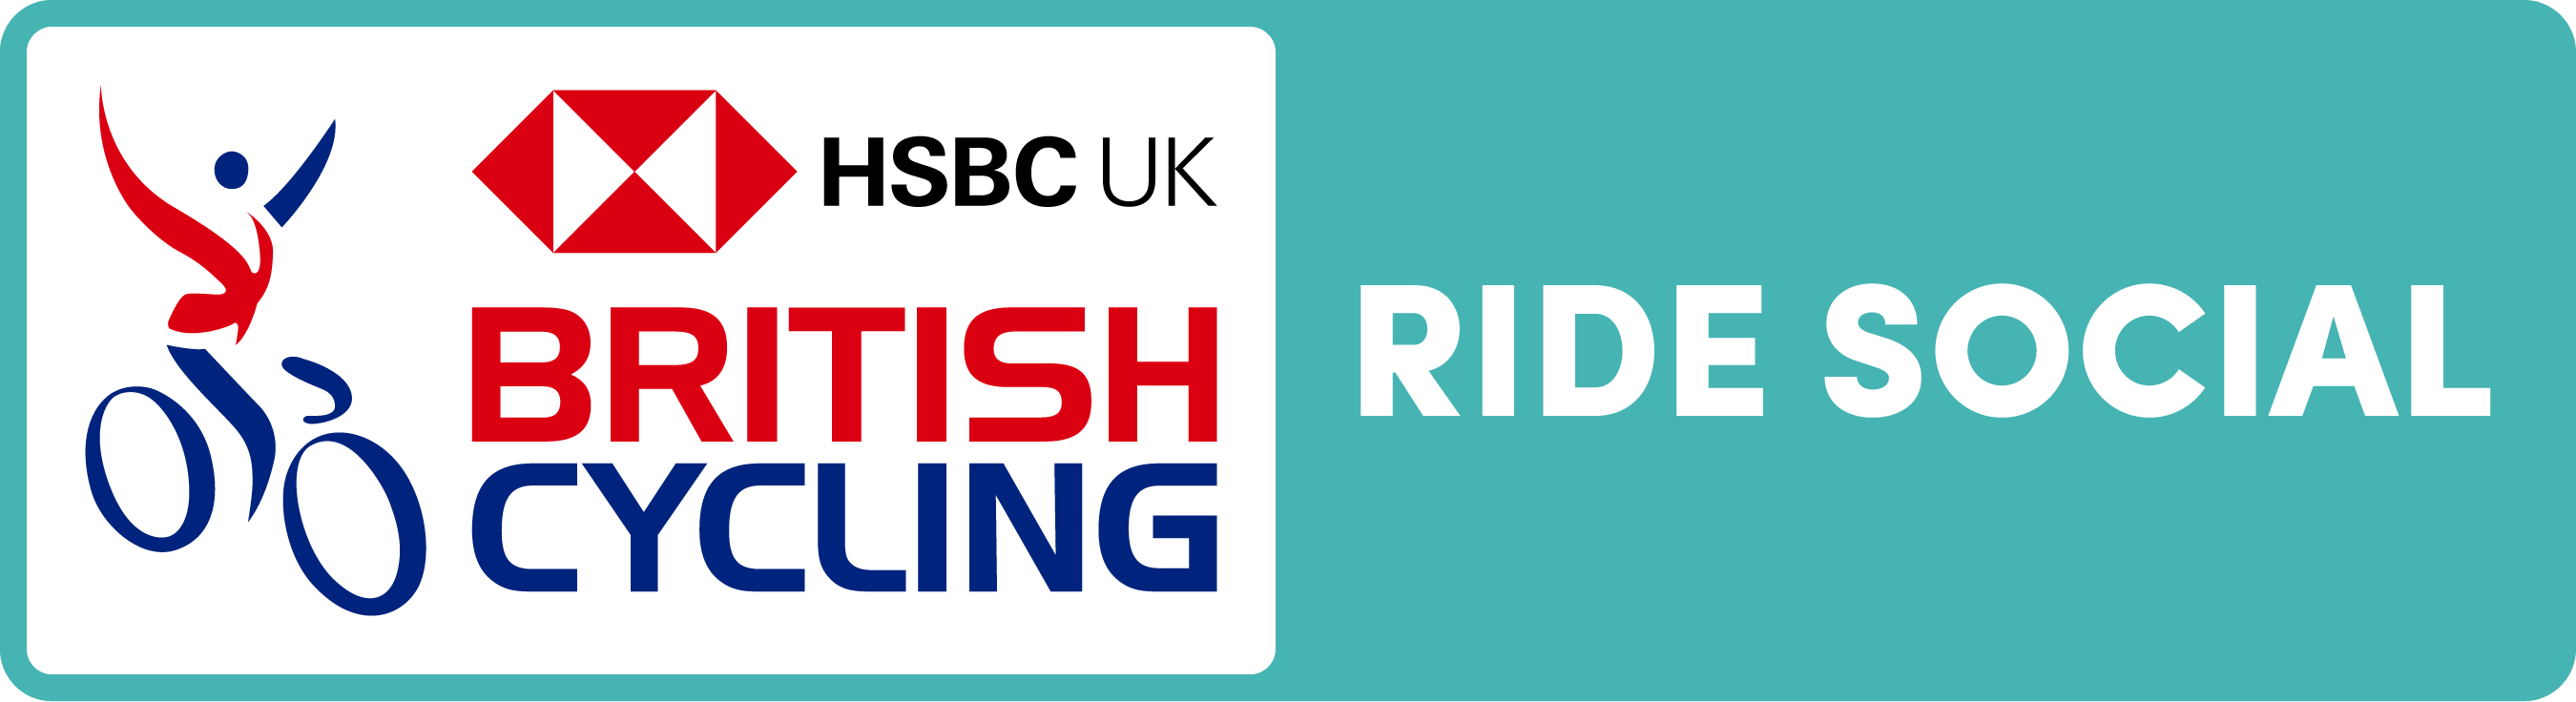 HSBC UK Ride Social logo